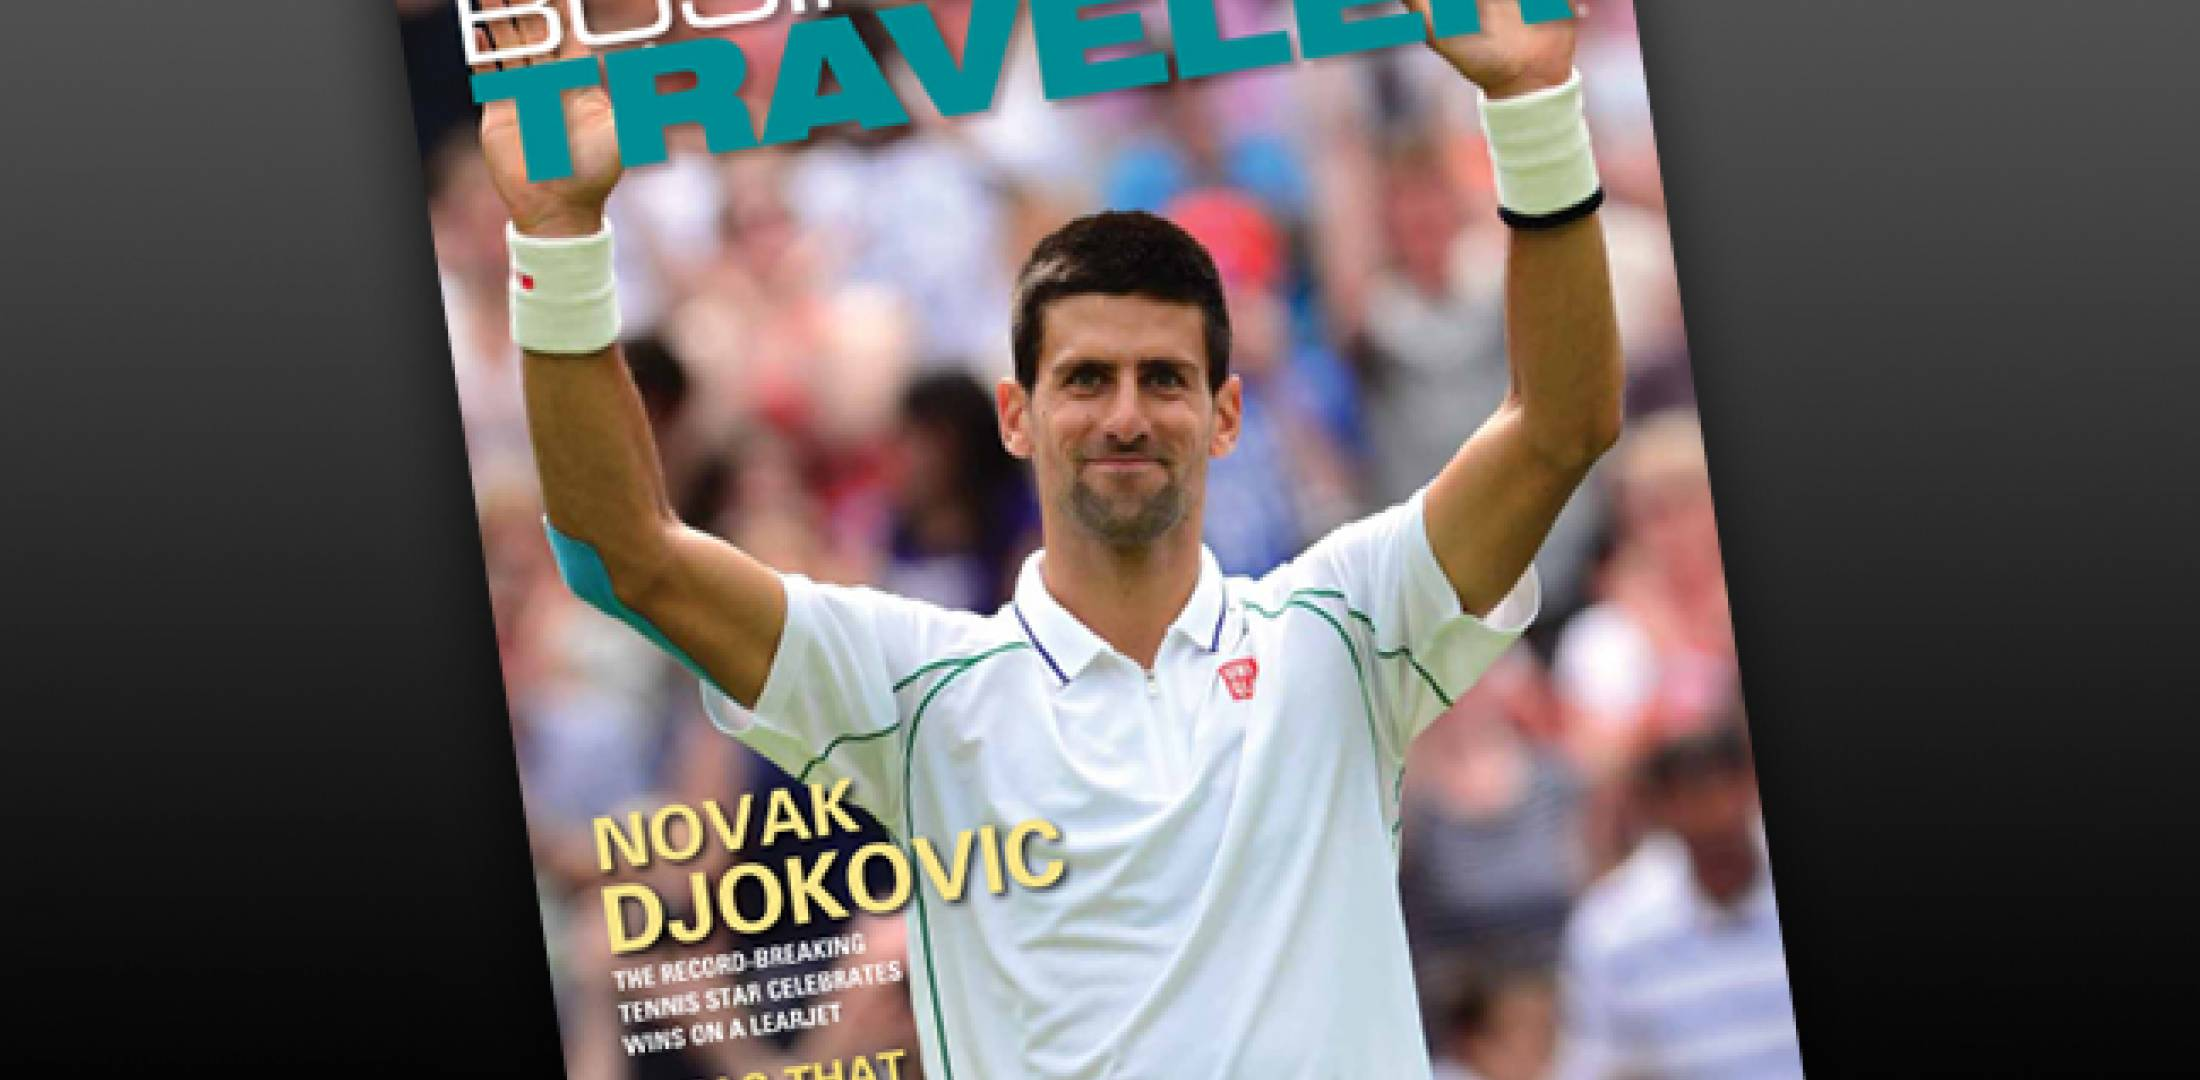 BJT cover subject Novak Djokovic